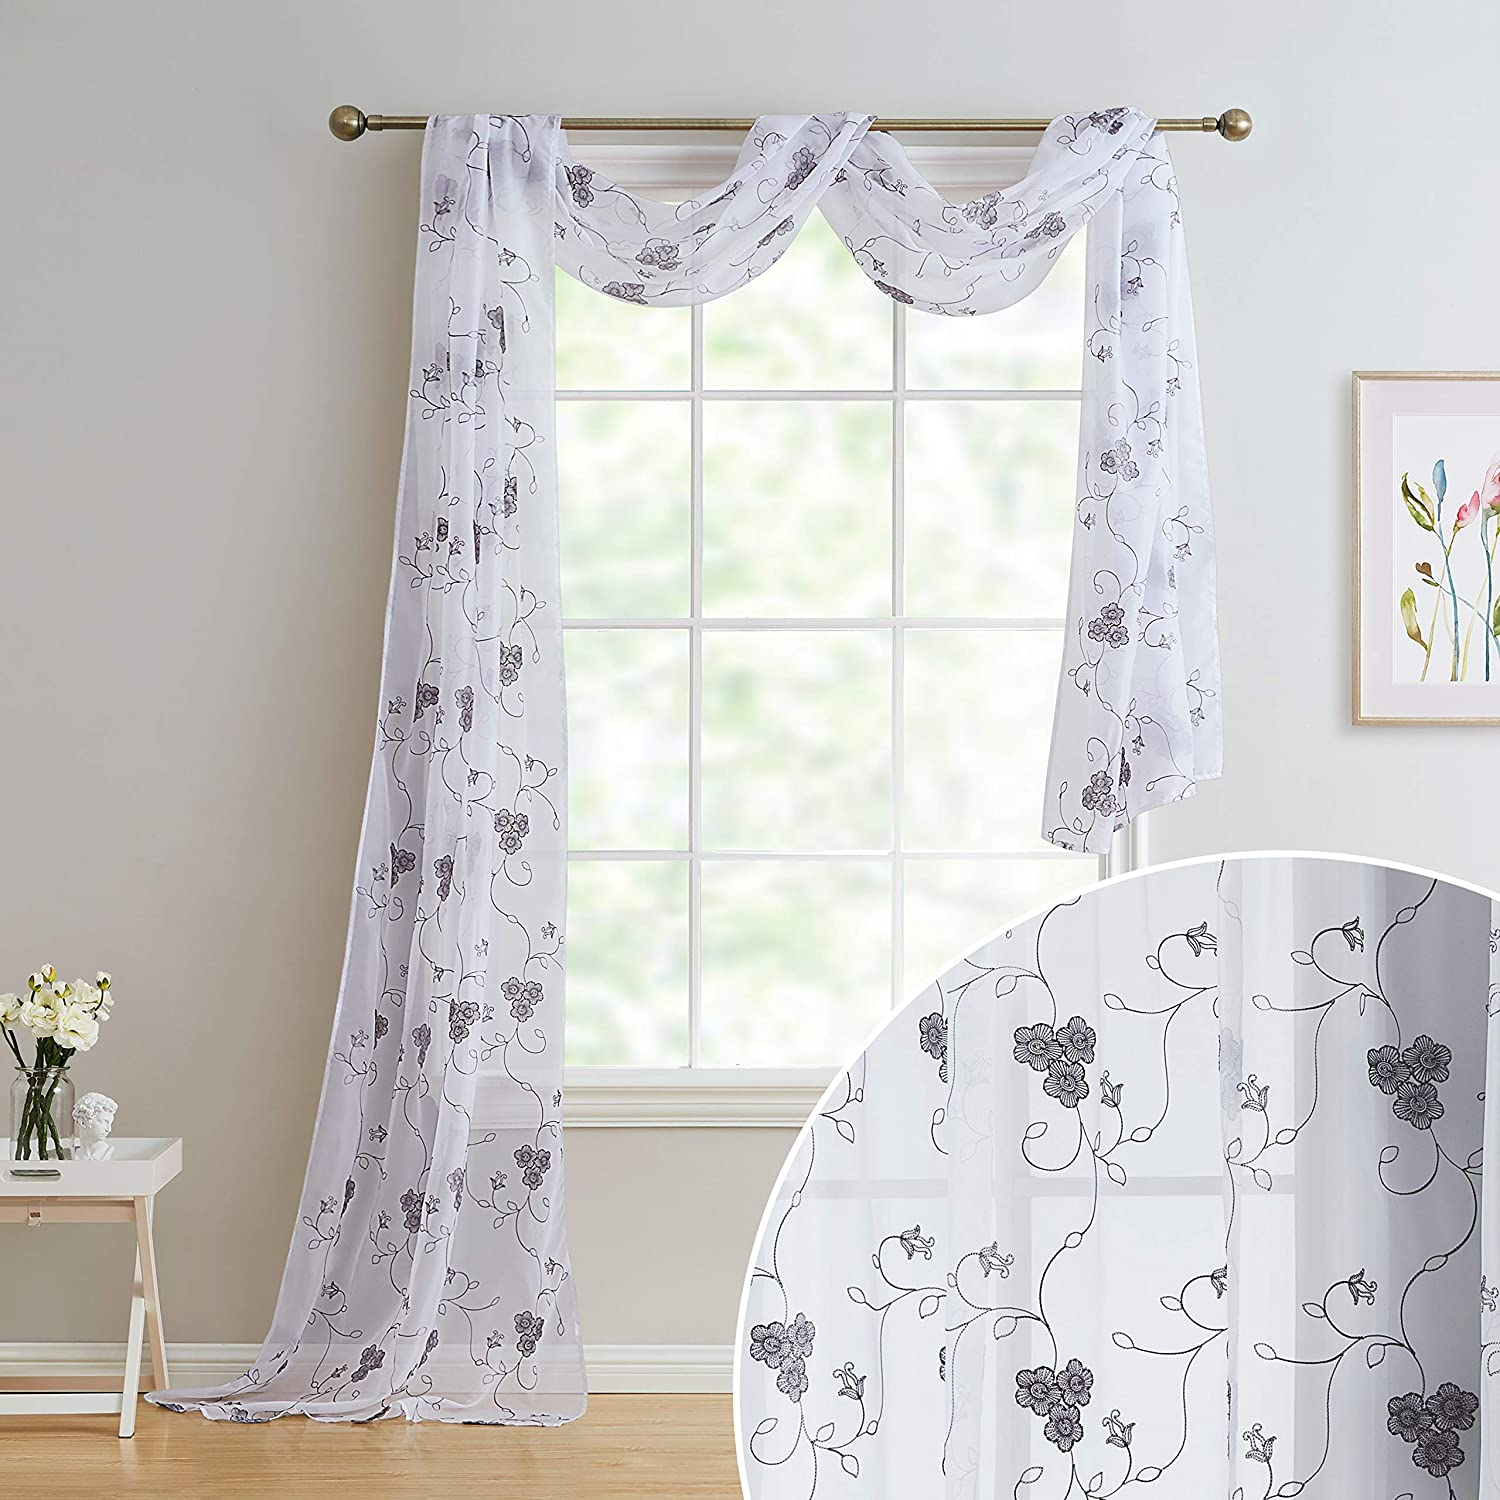 HLC.ME Allegra Floral Embroidered Sheer Voile Light Filtering Window Curtain Valance Scarf - 38 x 216 Inch Long (White/Grey)